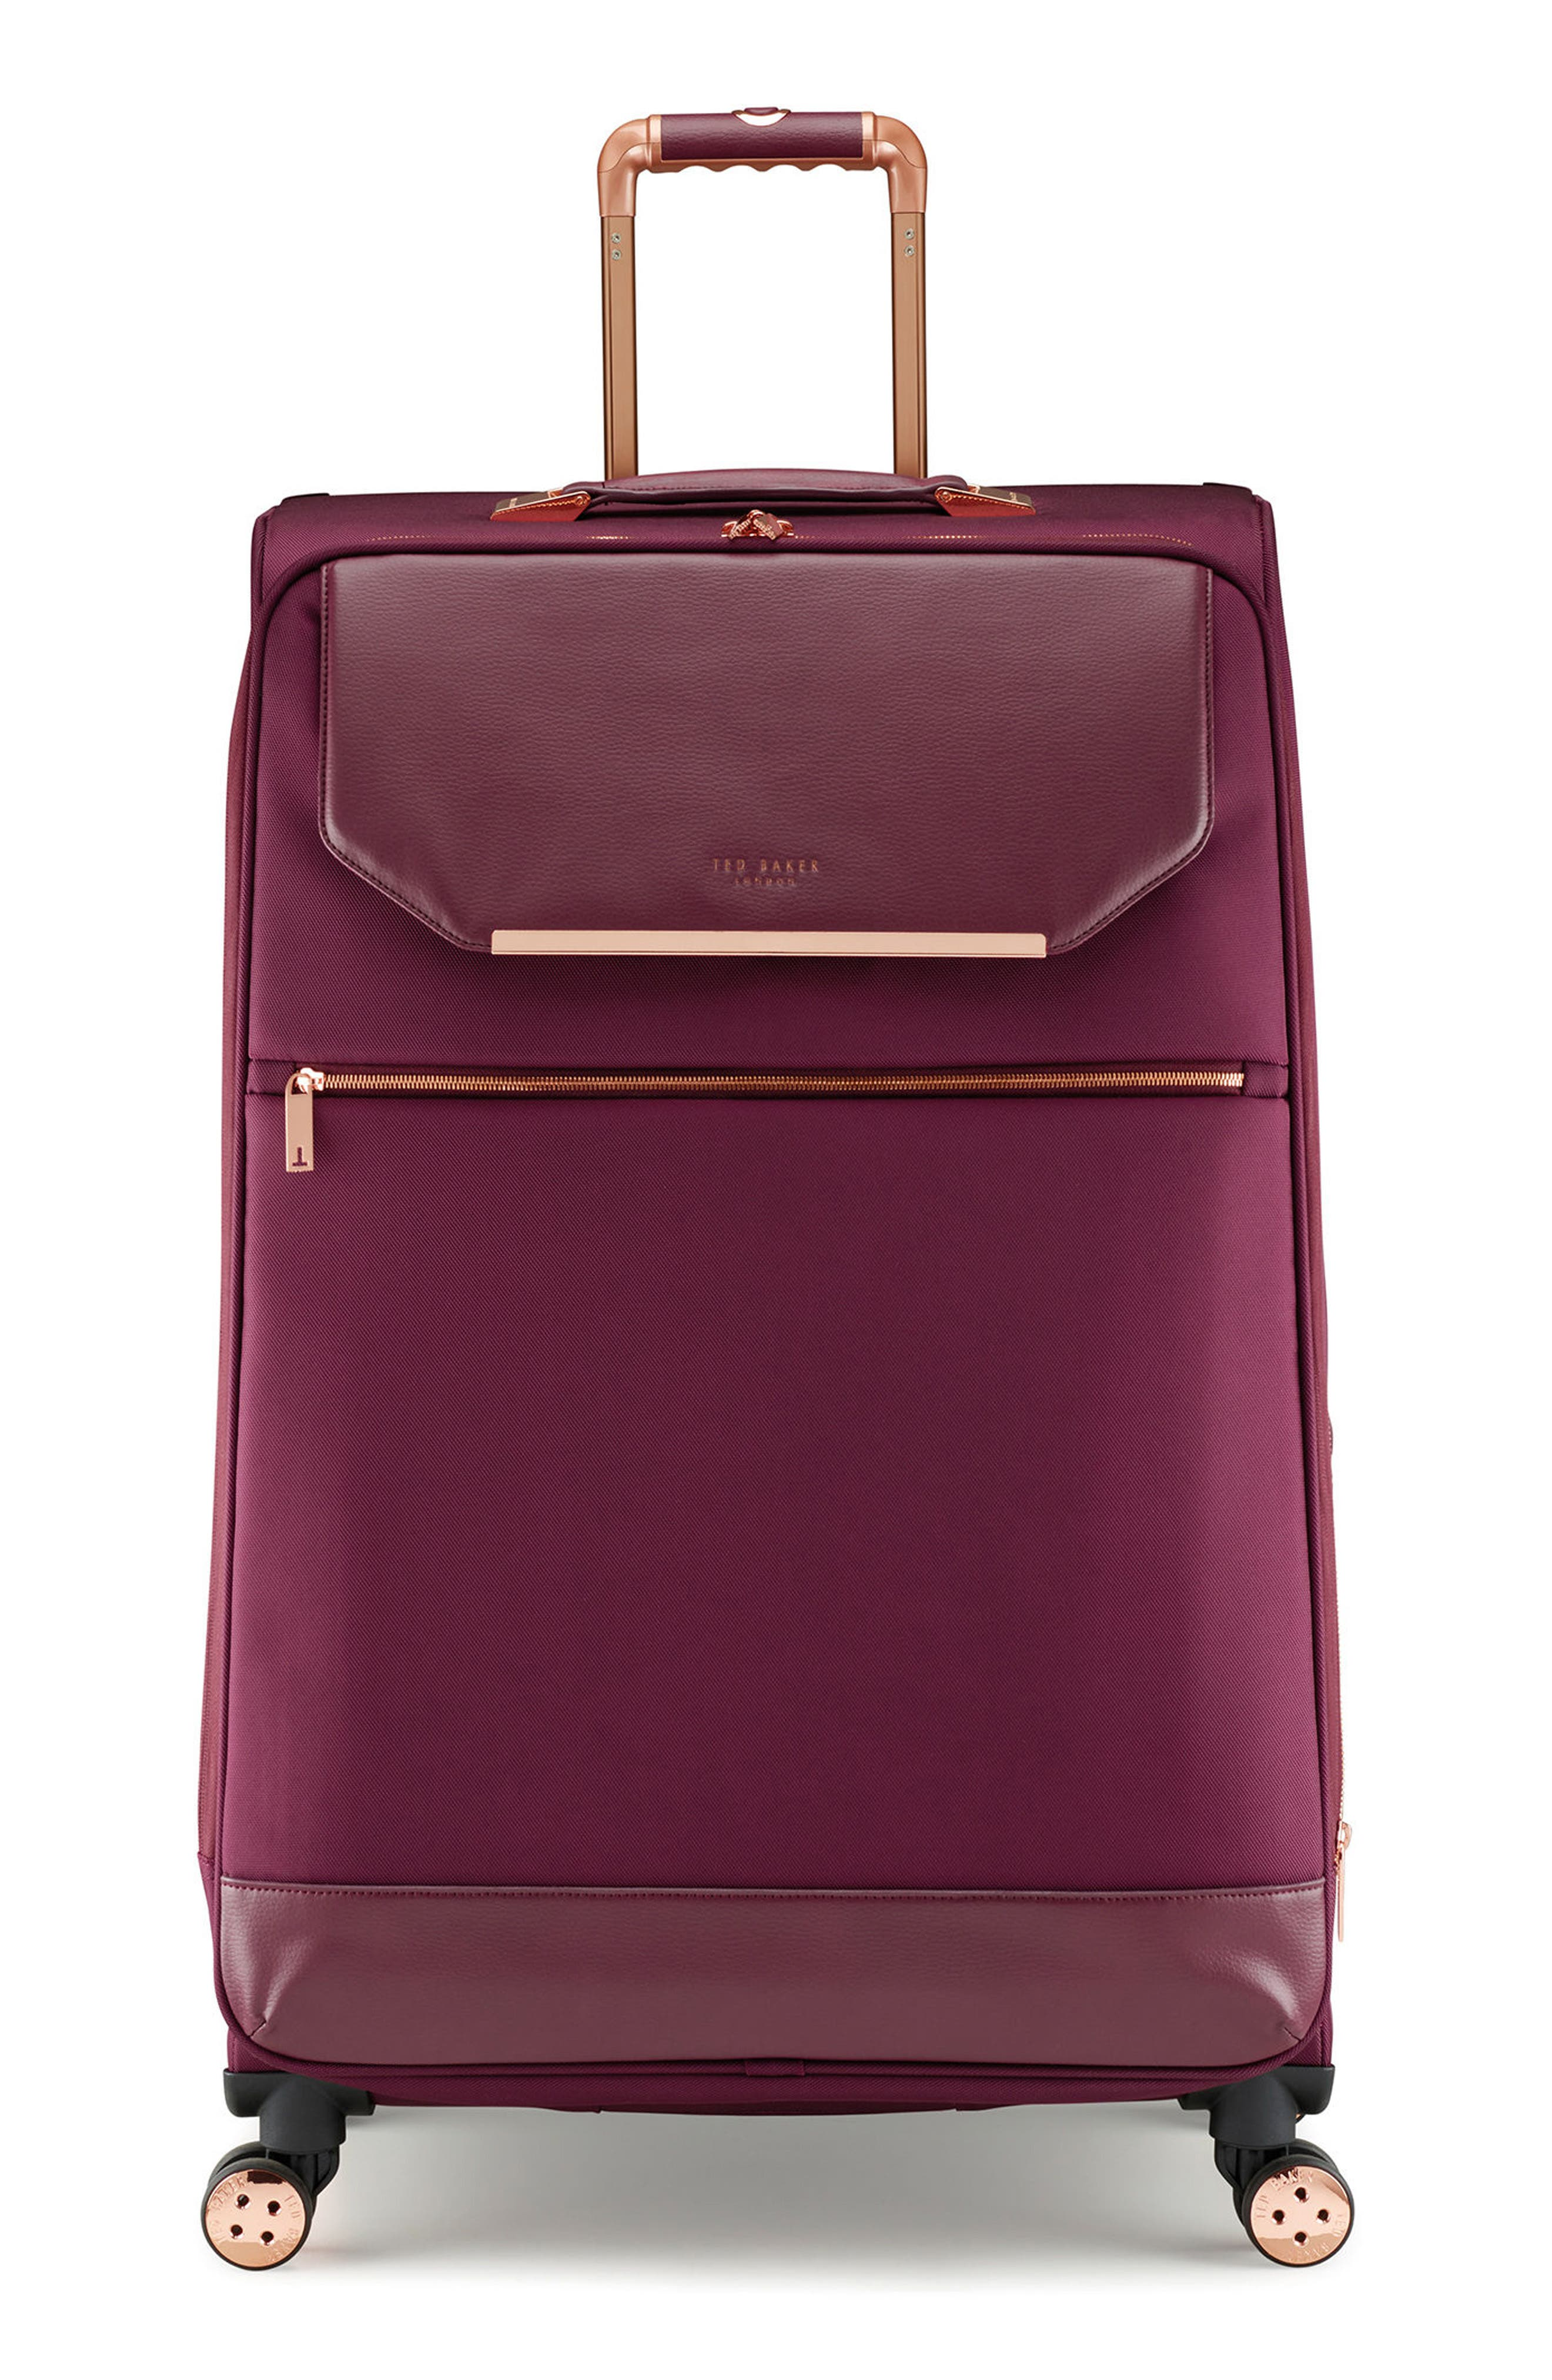 Ted Baker London 33-Inch Spinner Trolley Packing Case